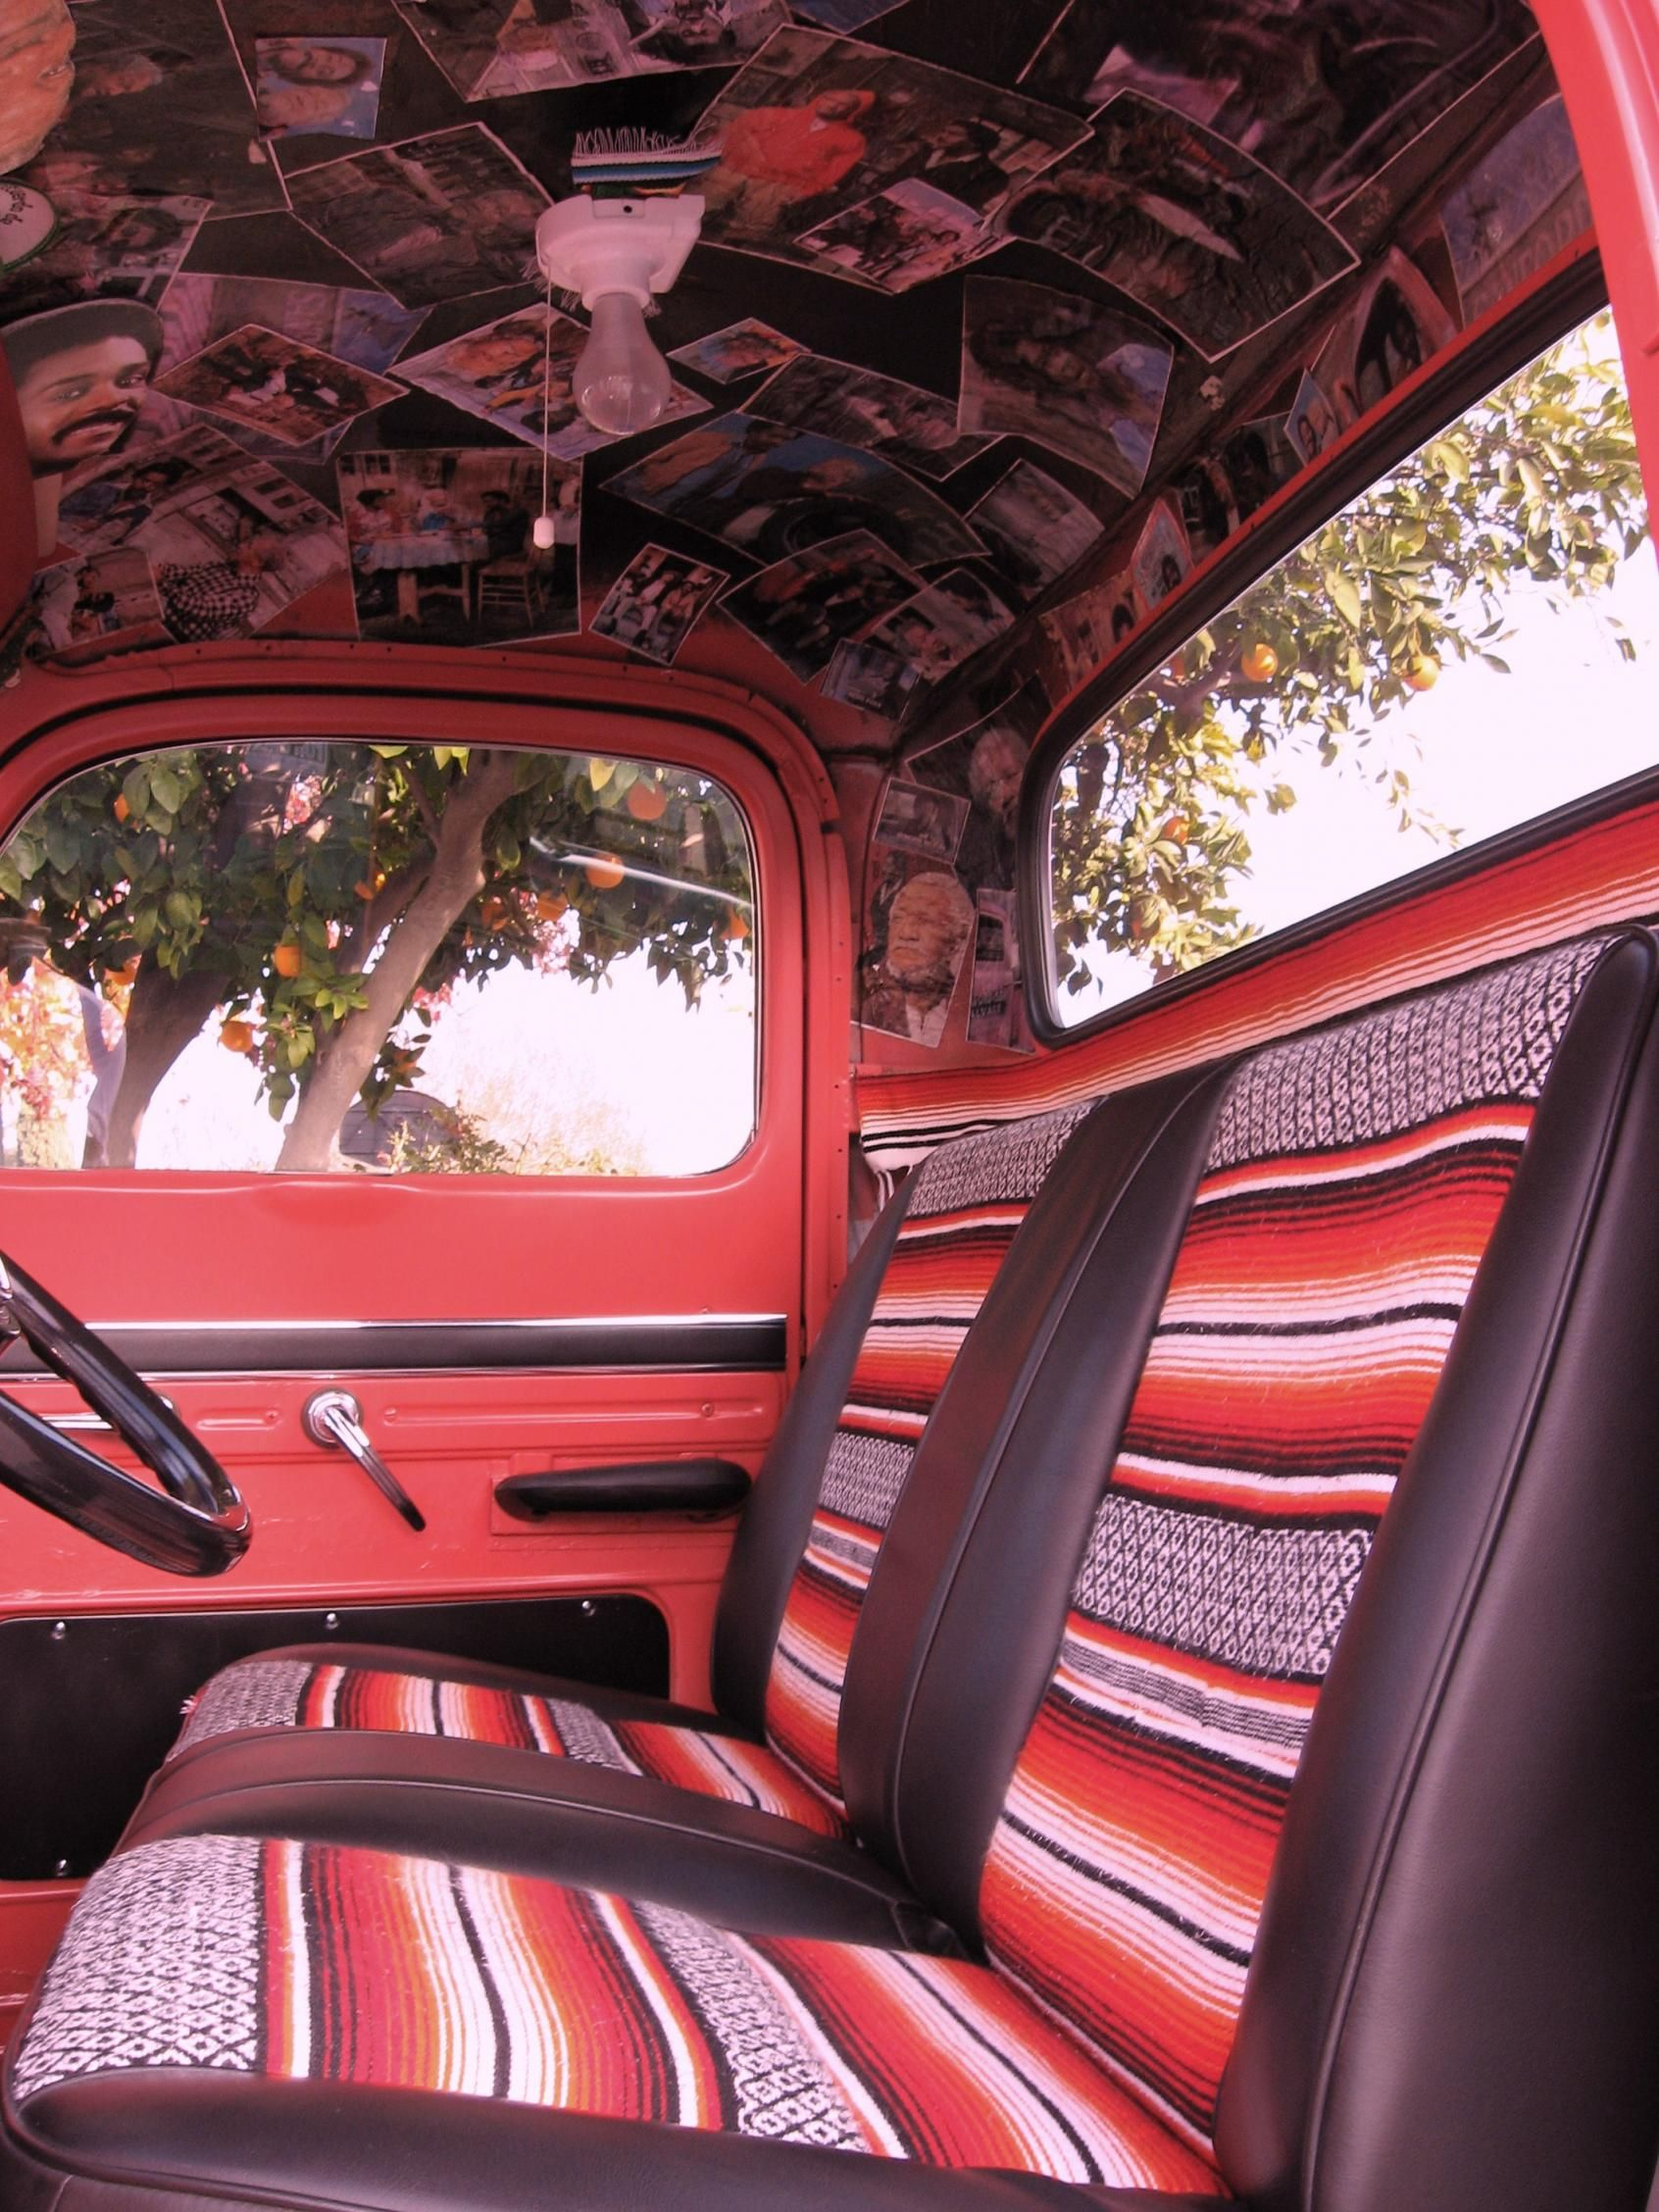 Truck Interieur Accessoires Vintage Truck With Serape Interior I Want A Truck That I Can Mod